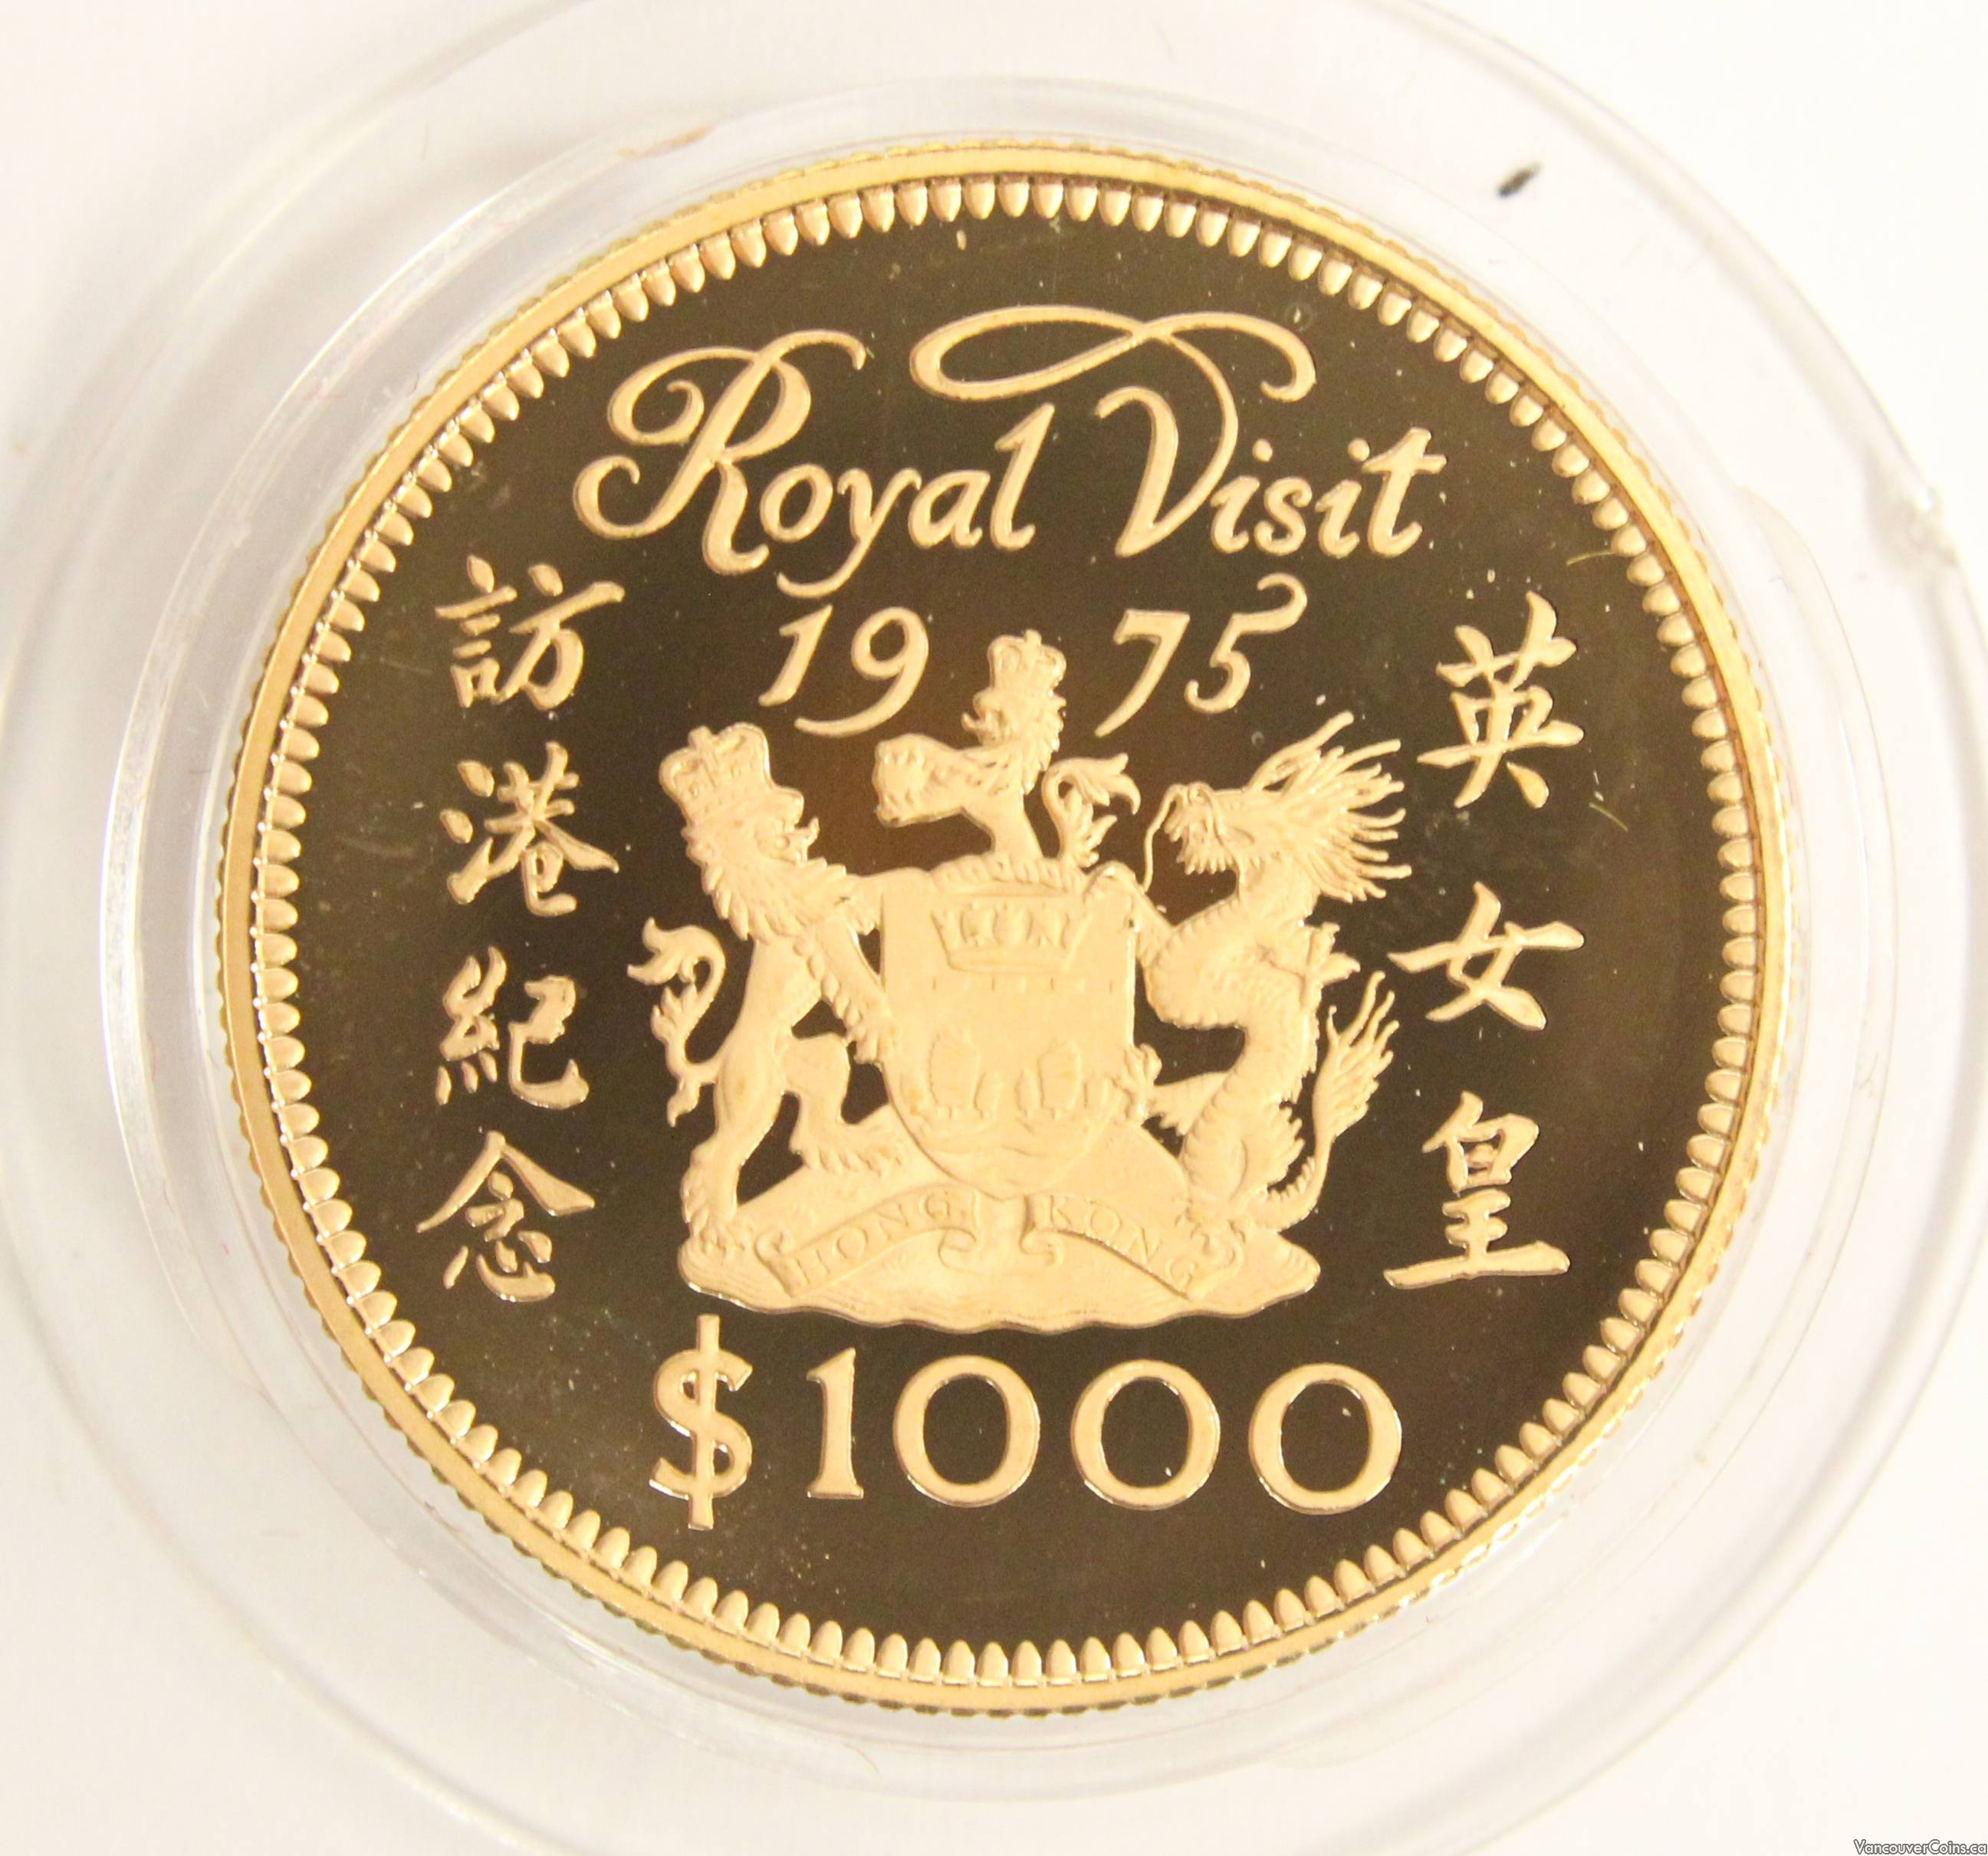 $1000 Hong Kong Gold coin 1975 Year of the ROYAL VISIT Gem Cameo Proof